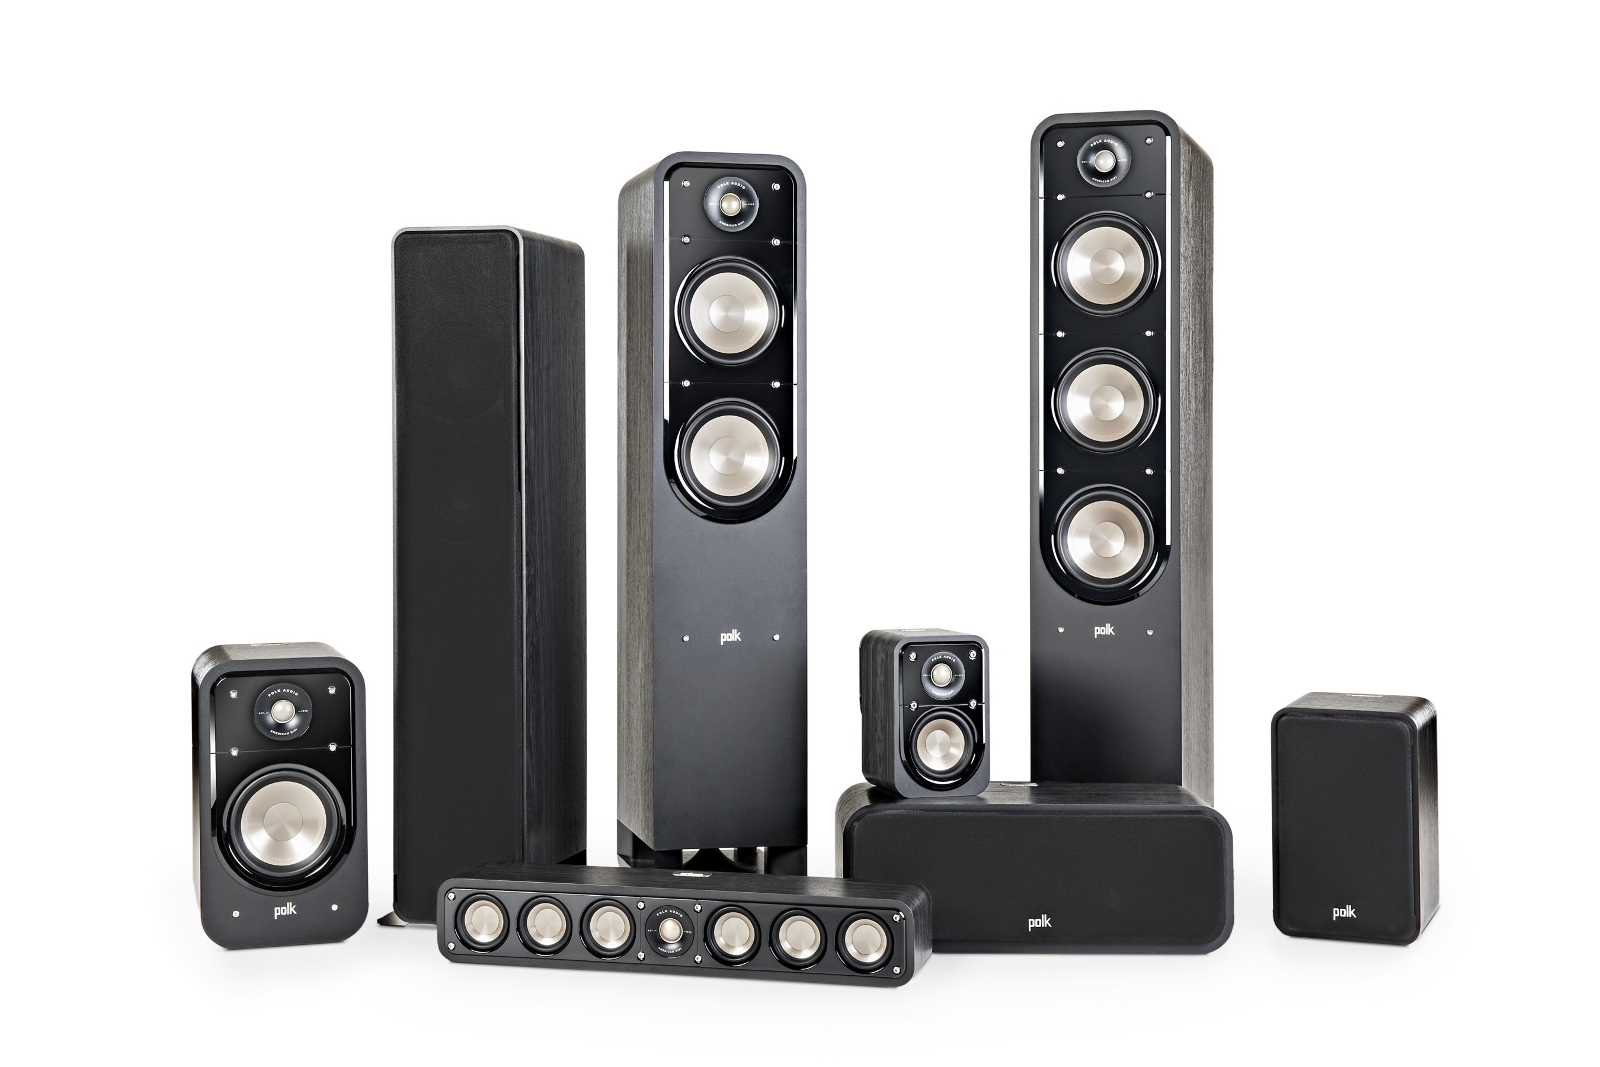 Polk Signature S60 Speakers, Cashing In on Sound Quality and Not Your Wallet